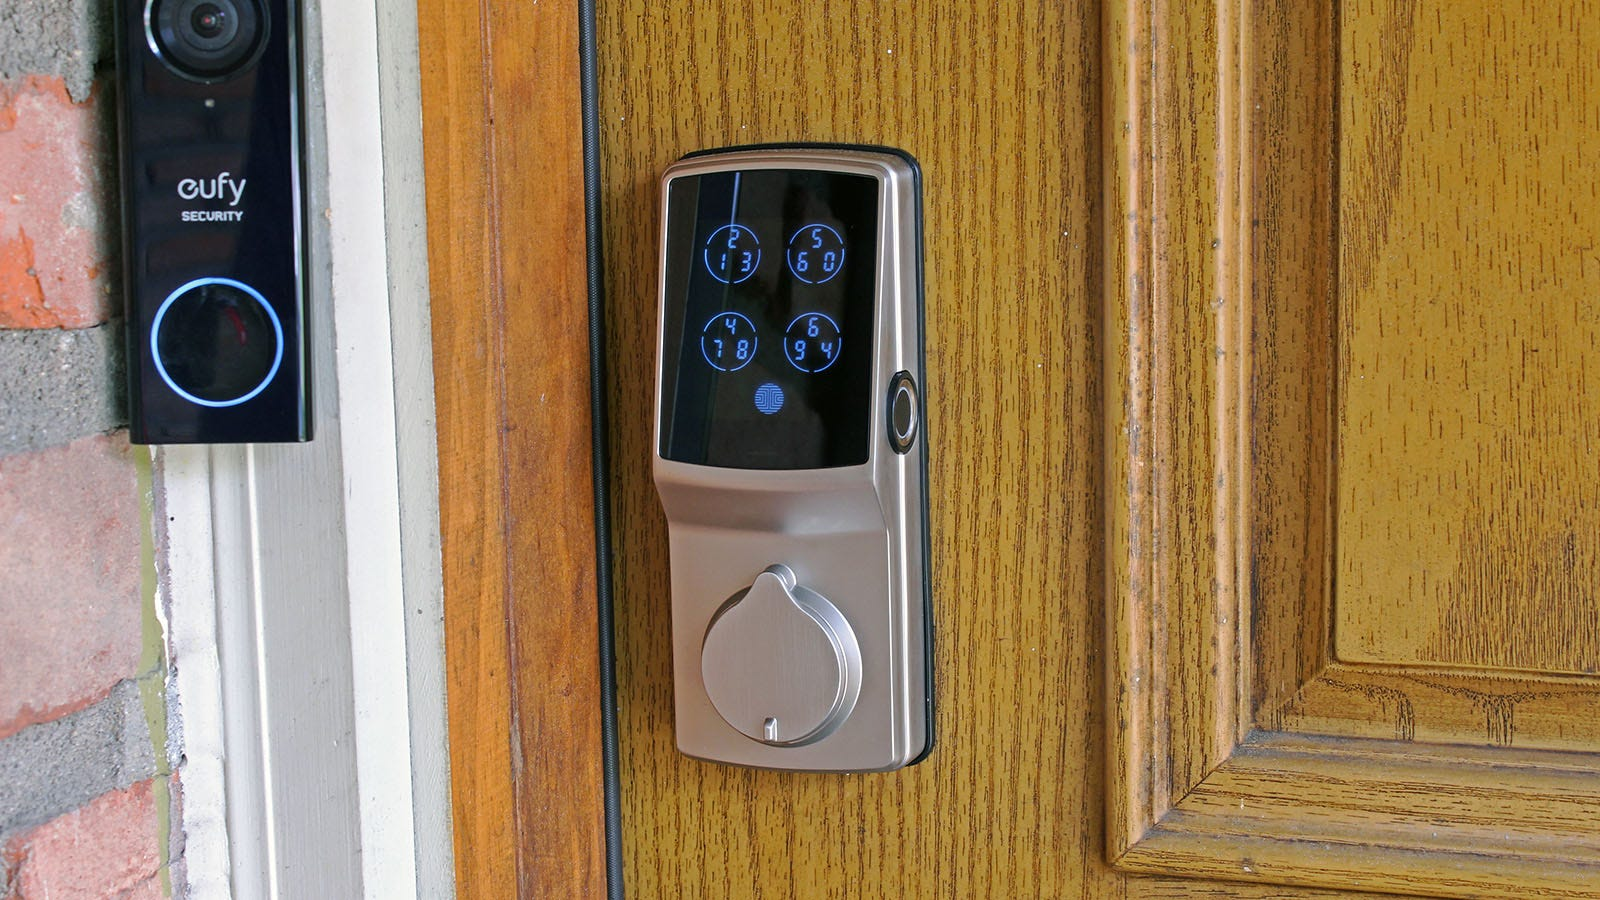 A Lockly Secure Pro with keypad activated.